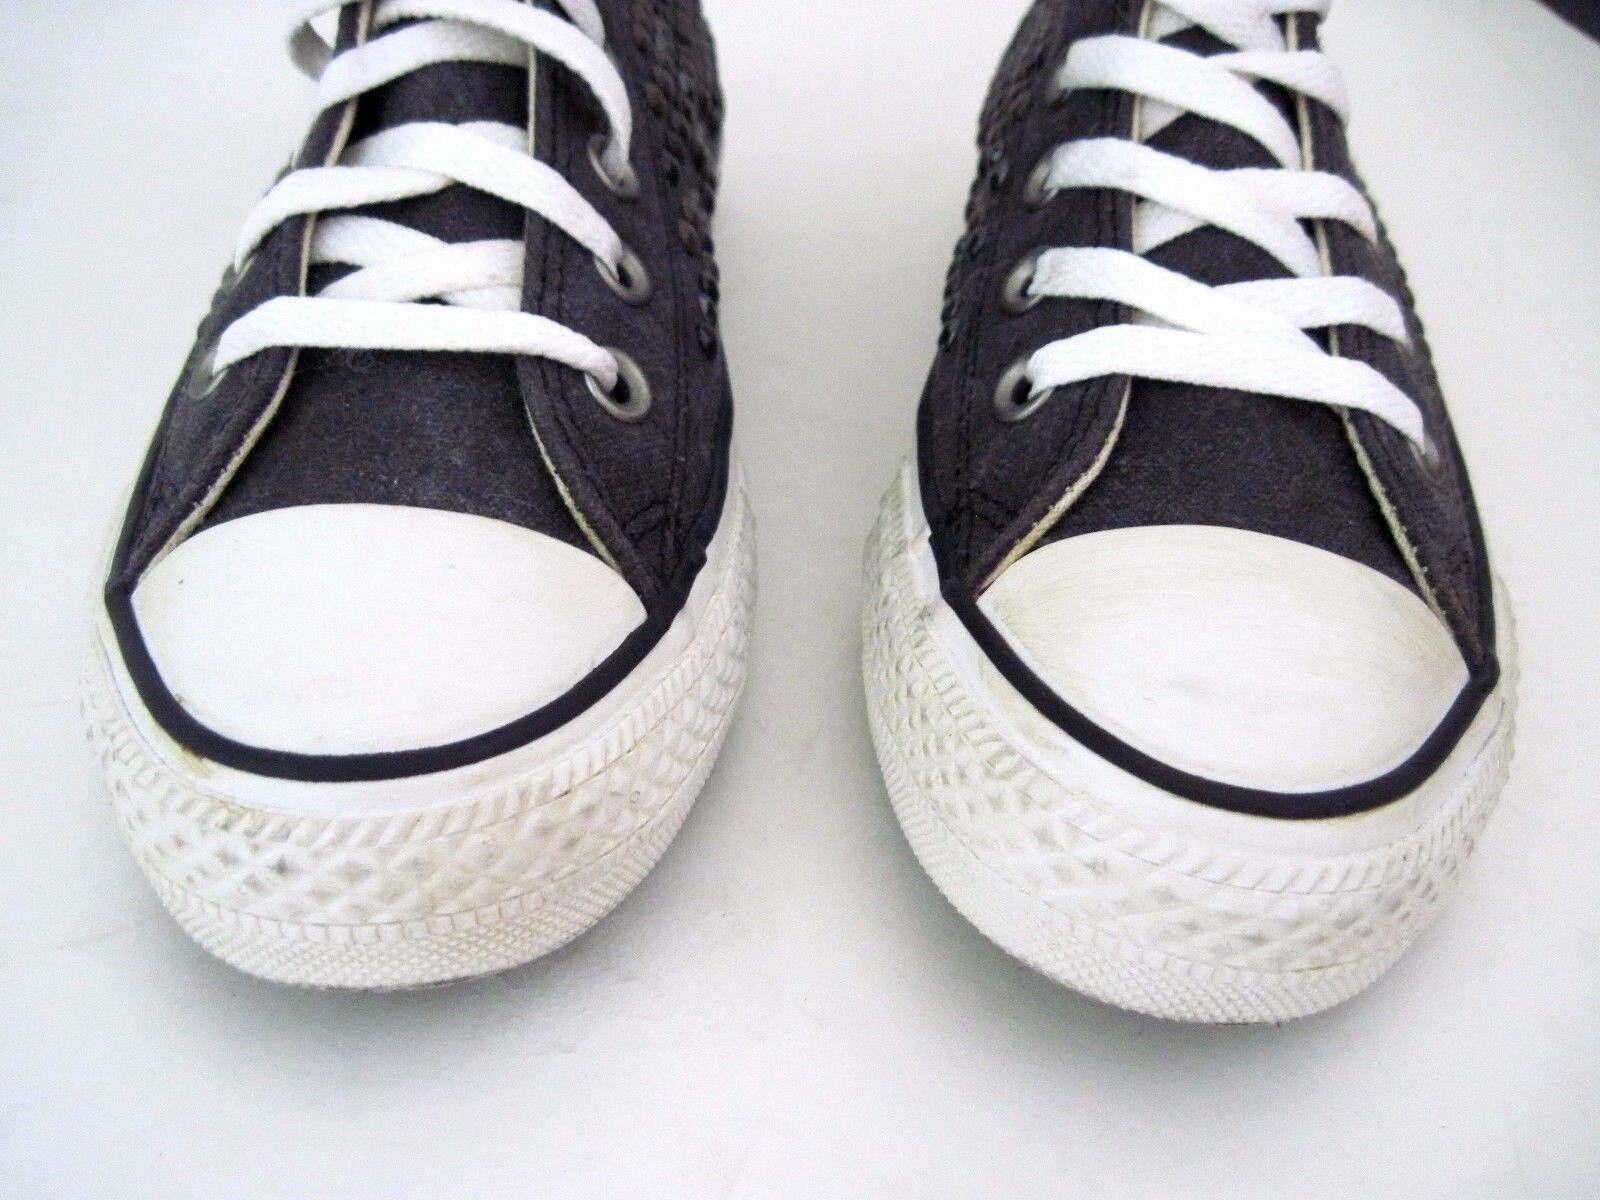 CONVERSE All Star Star Star Chuck Taylor Studded Hi Tops Black Women's Sneakers Size 6.5 521728